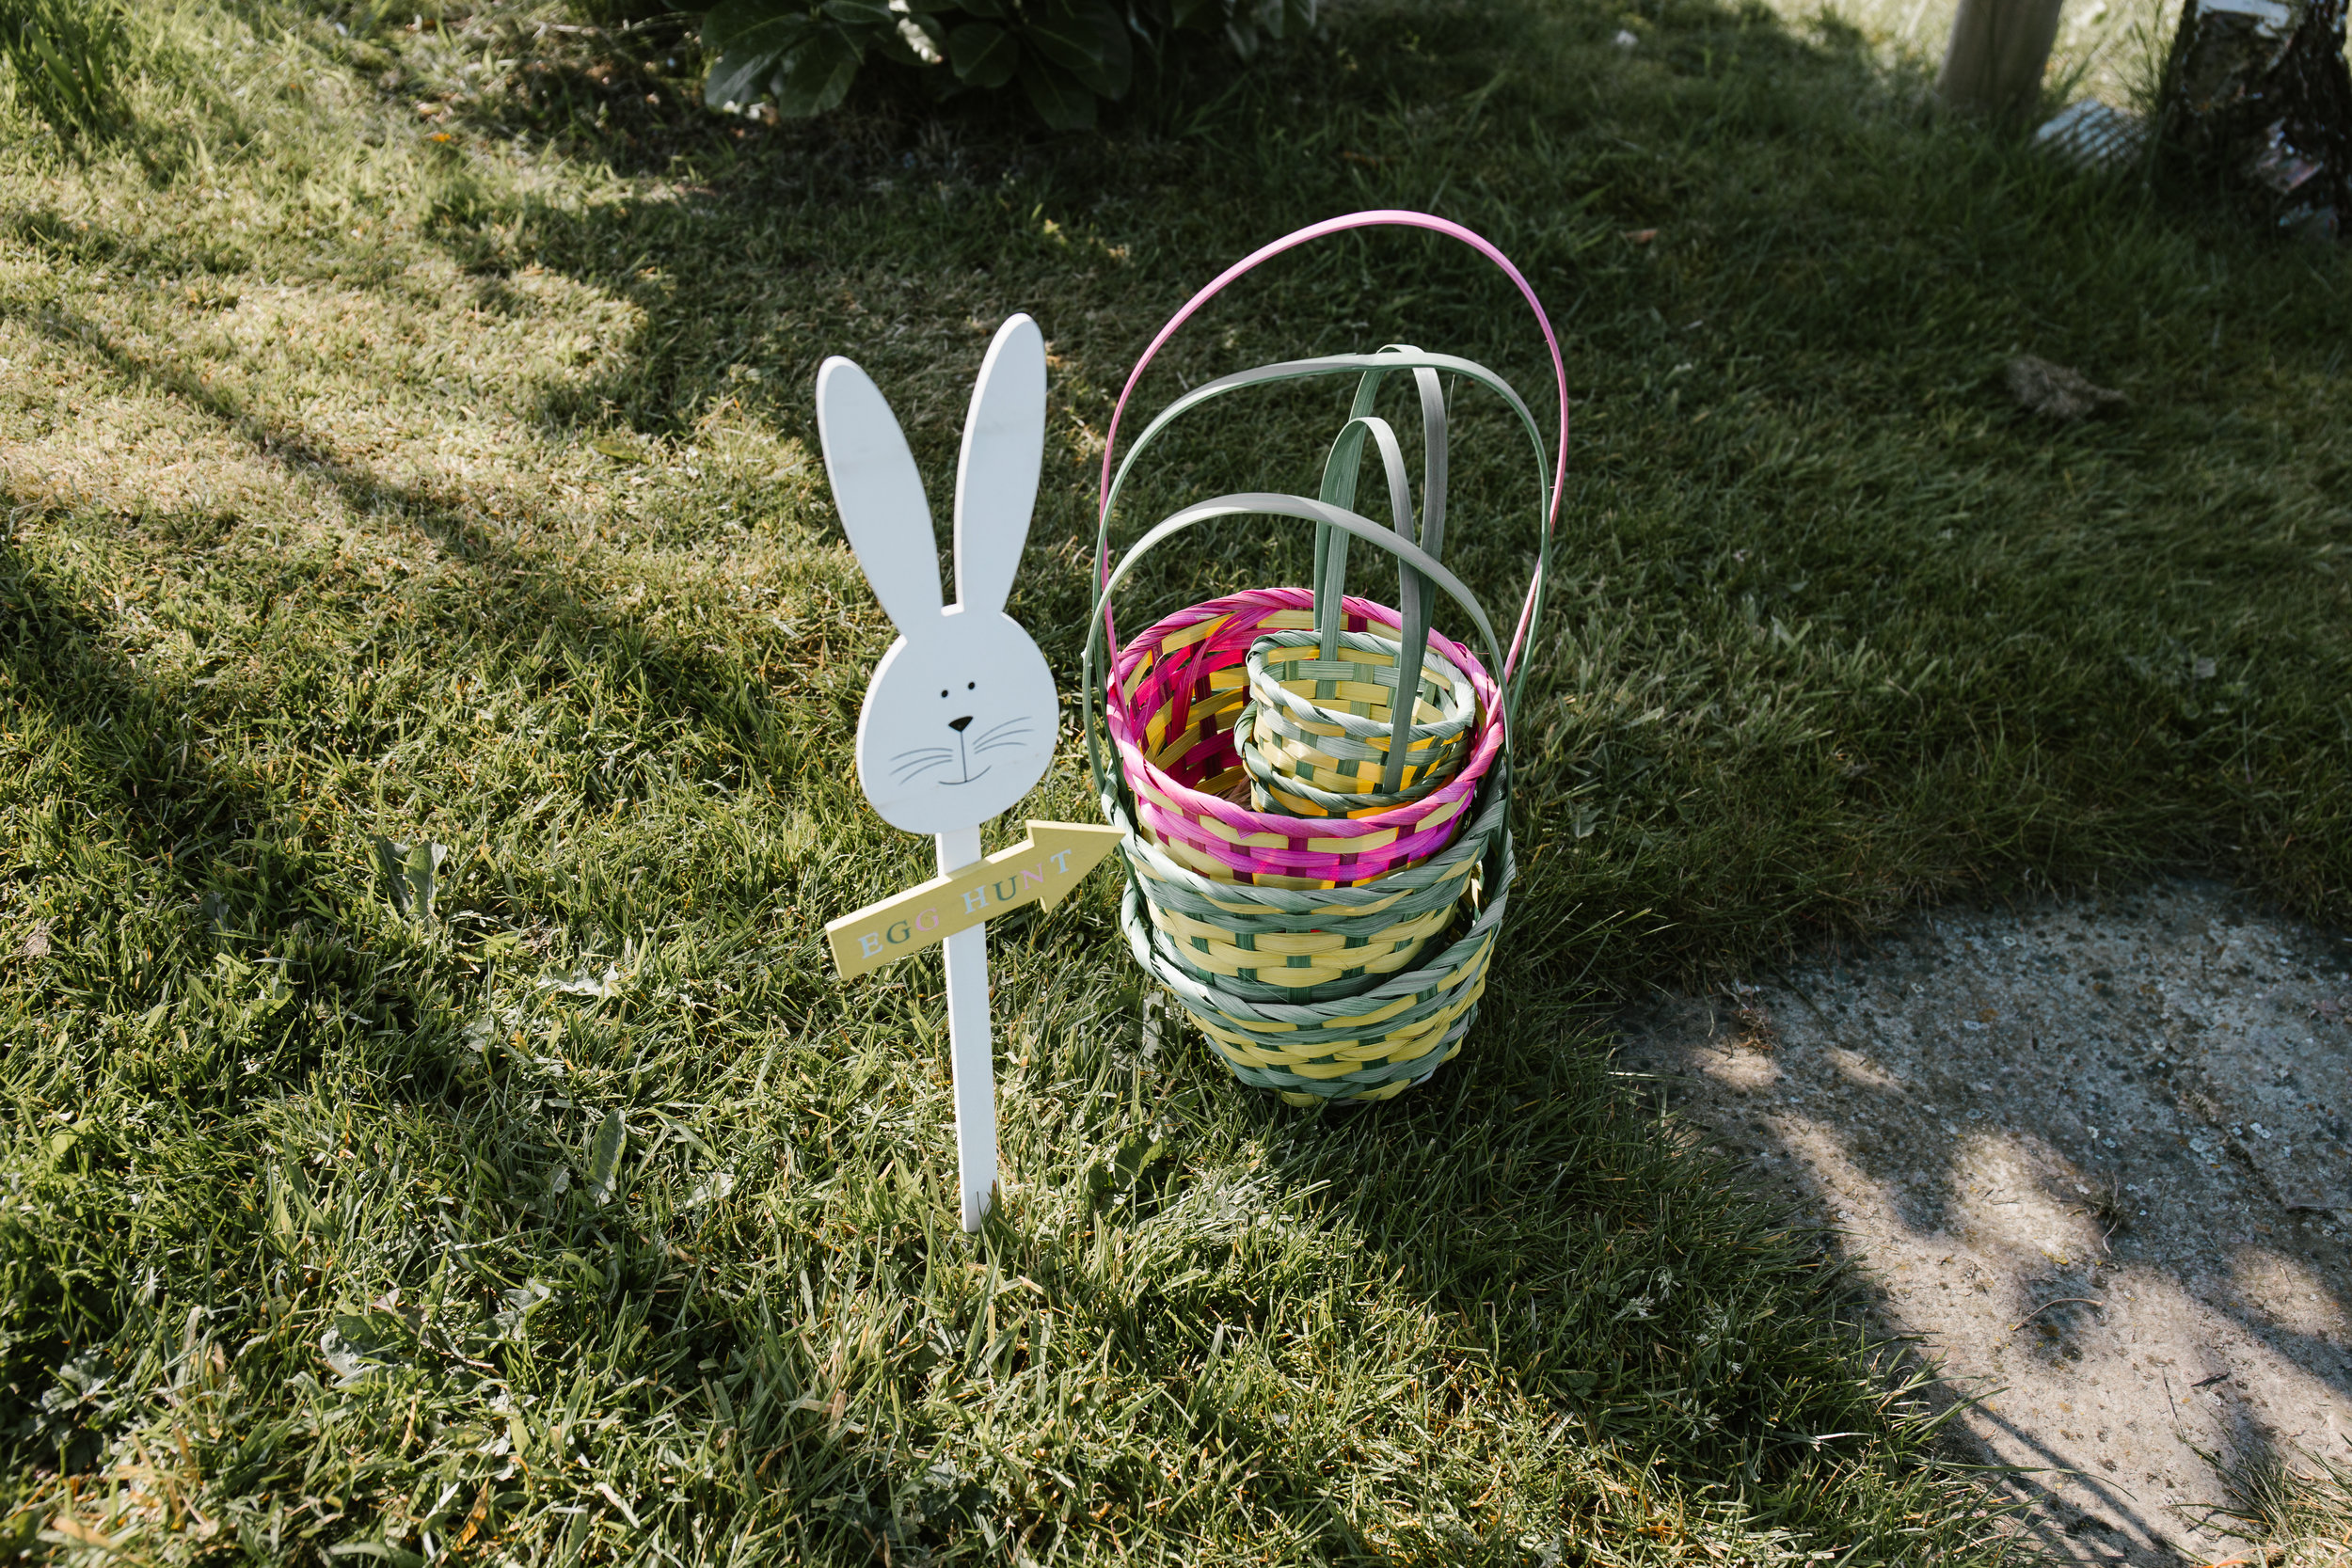 easter egg hunt for children at a wedding